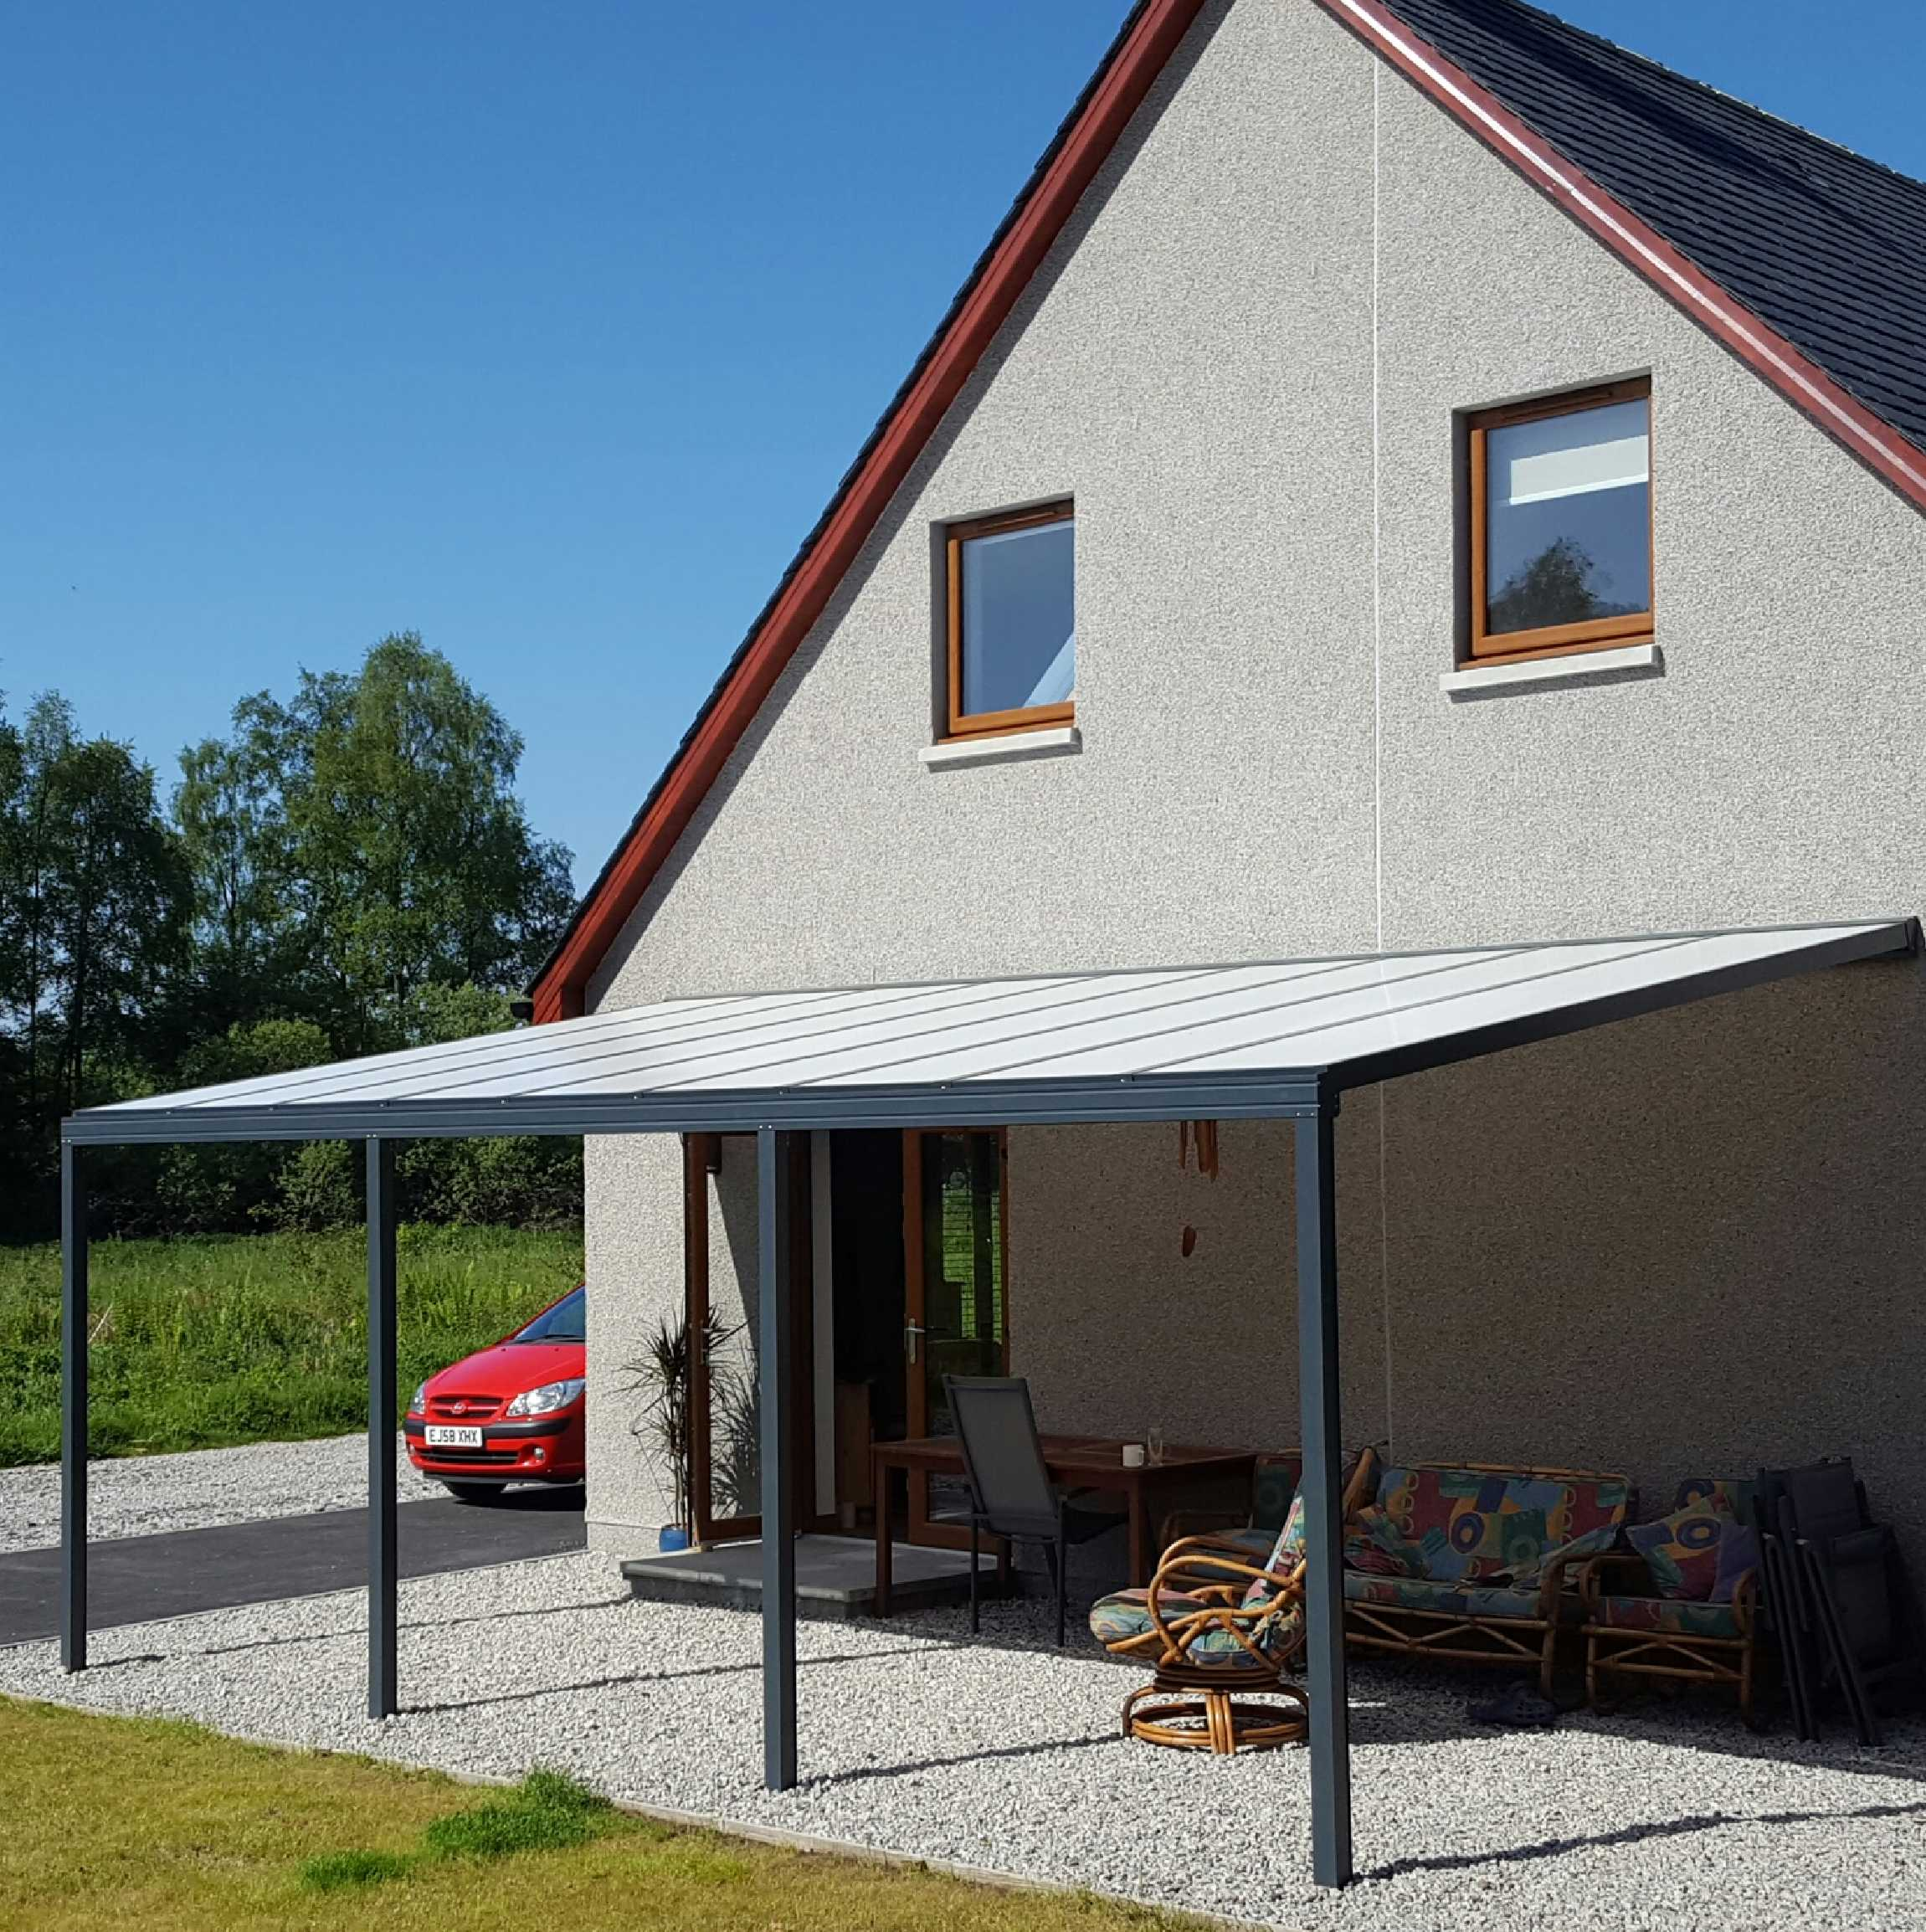 Great selection of Omega Smart Lean-To Canopy, Anthracite Grey, 16mm Polycarbonate Glazing - 9.5m (W) x 3.0m (P), (5) Supporting Posts